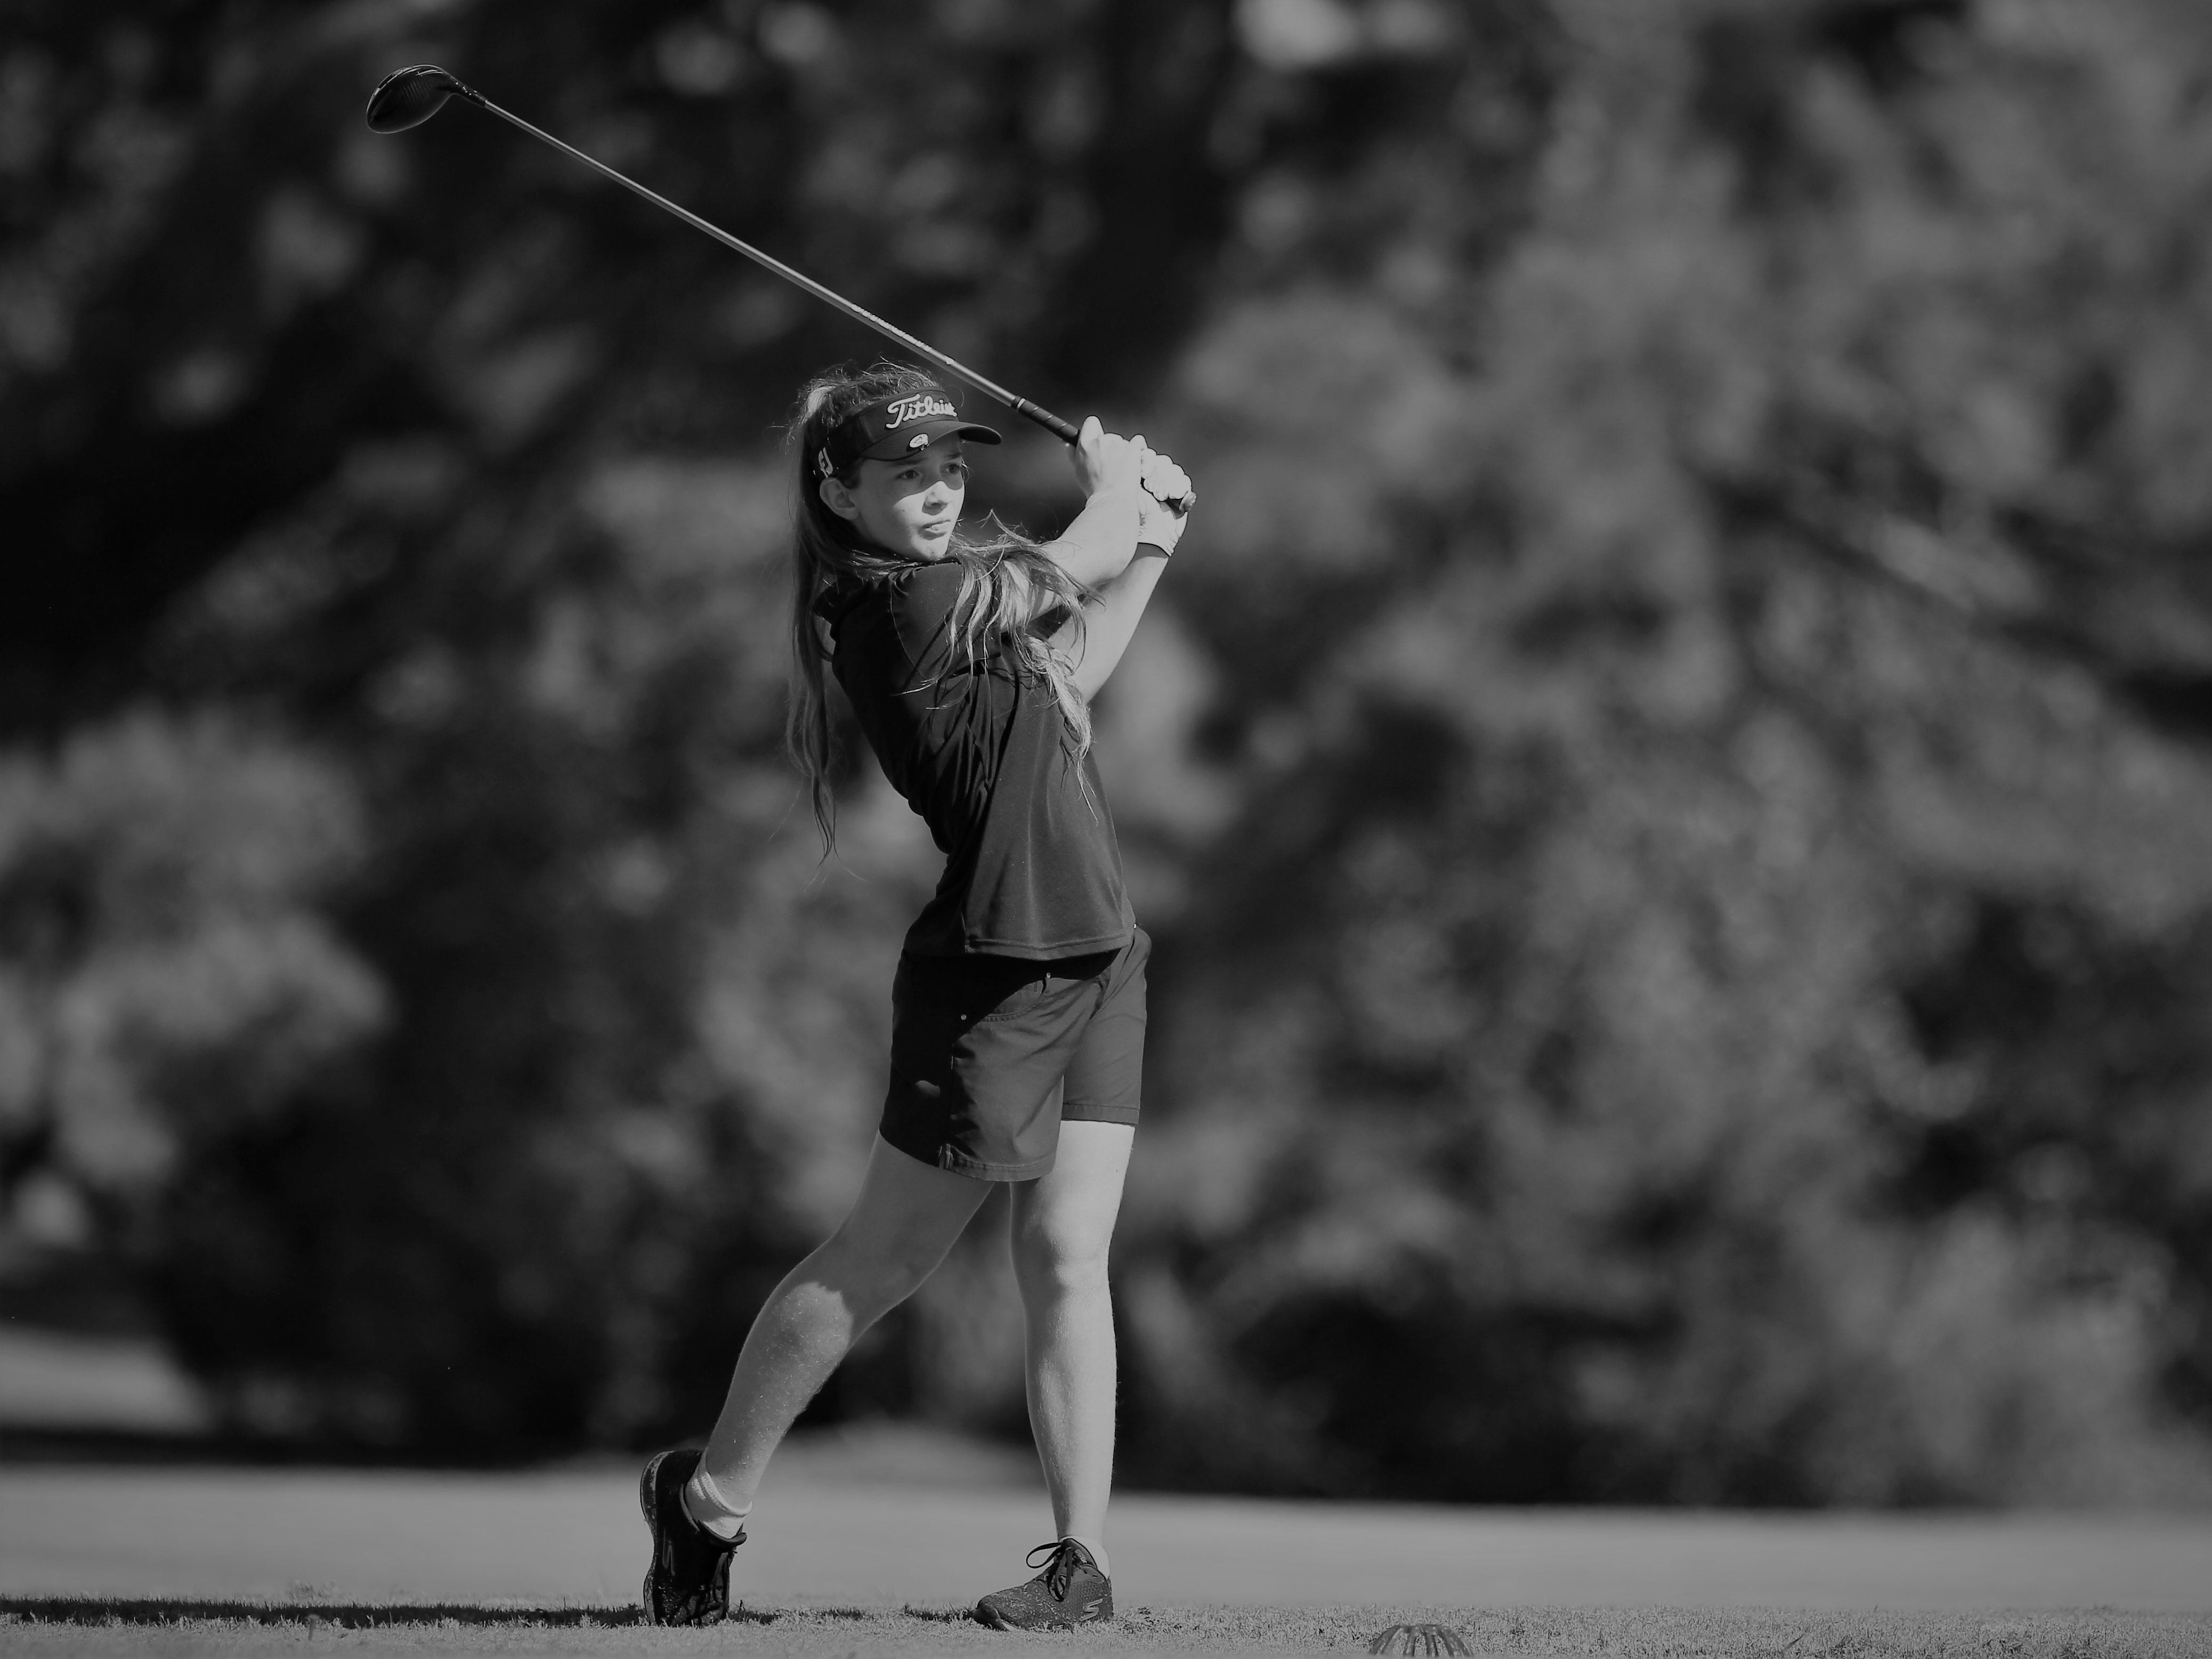 Community Christian eighth-grader Sabree Lefebvre watches a tee shot during the girls golf Panhandle Invitational at Killearn Country Club, Oct. 4, 2018.